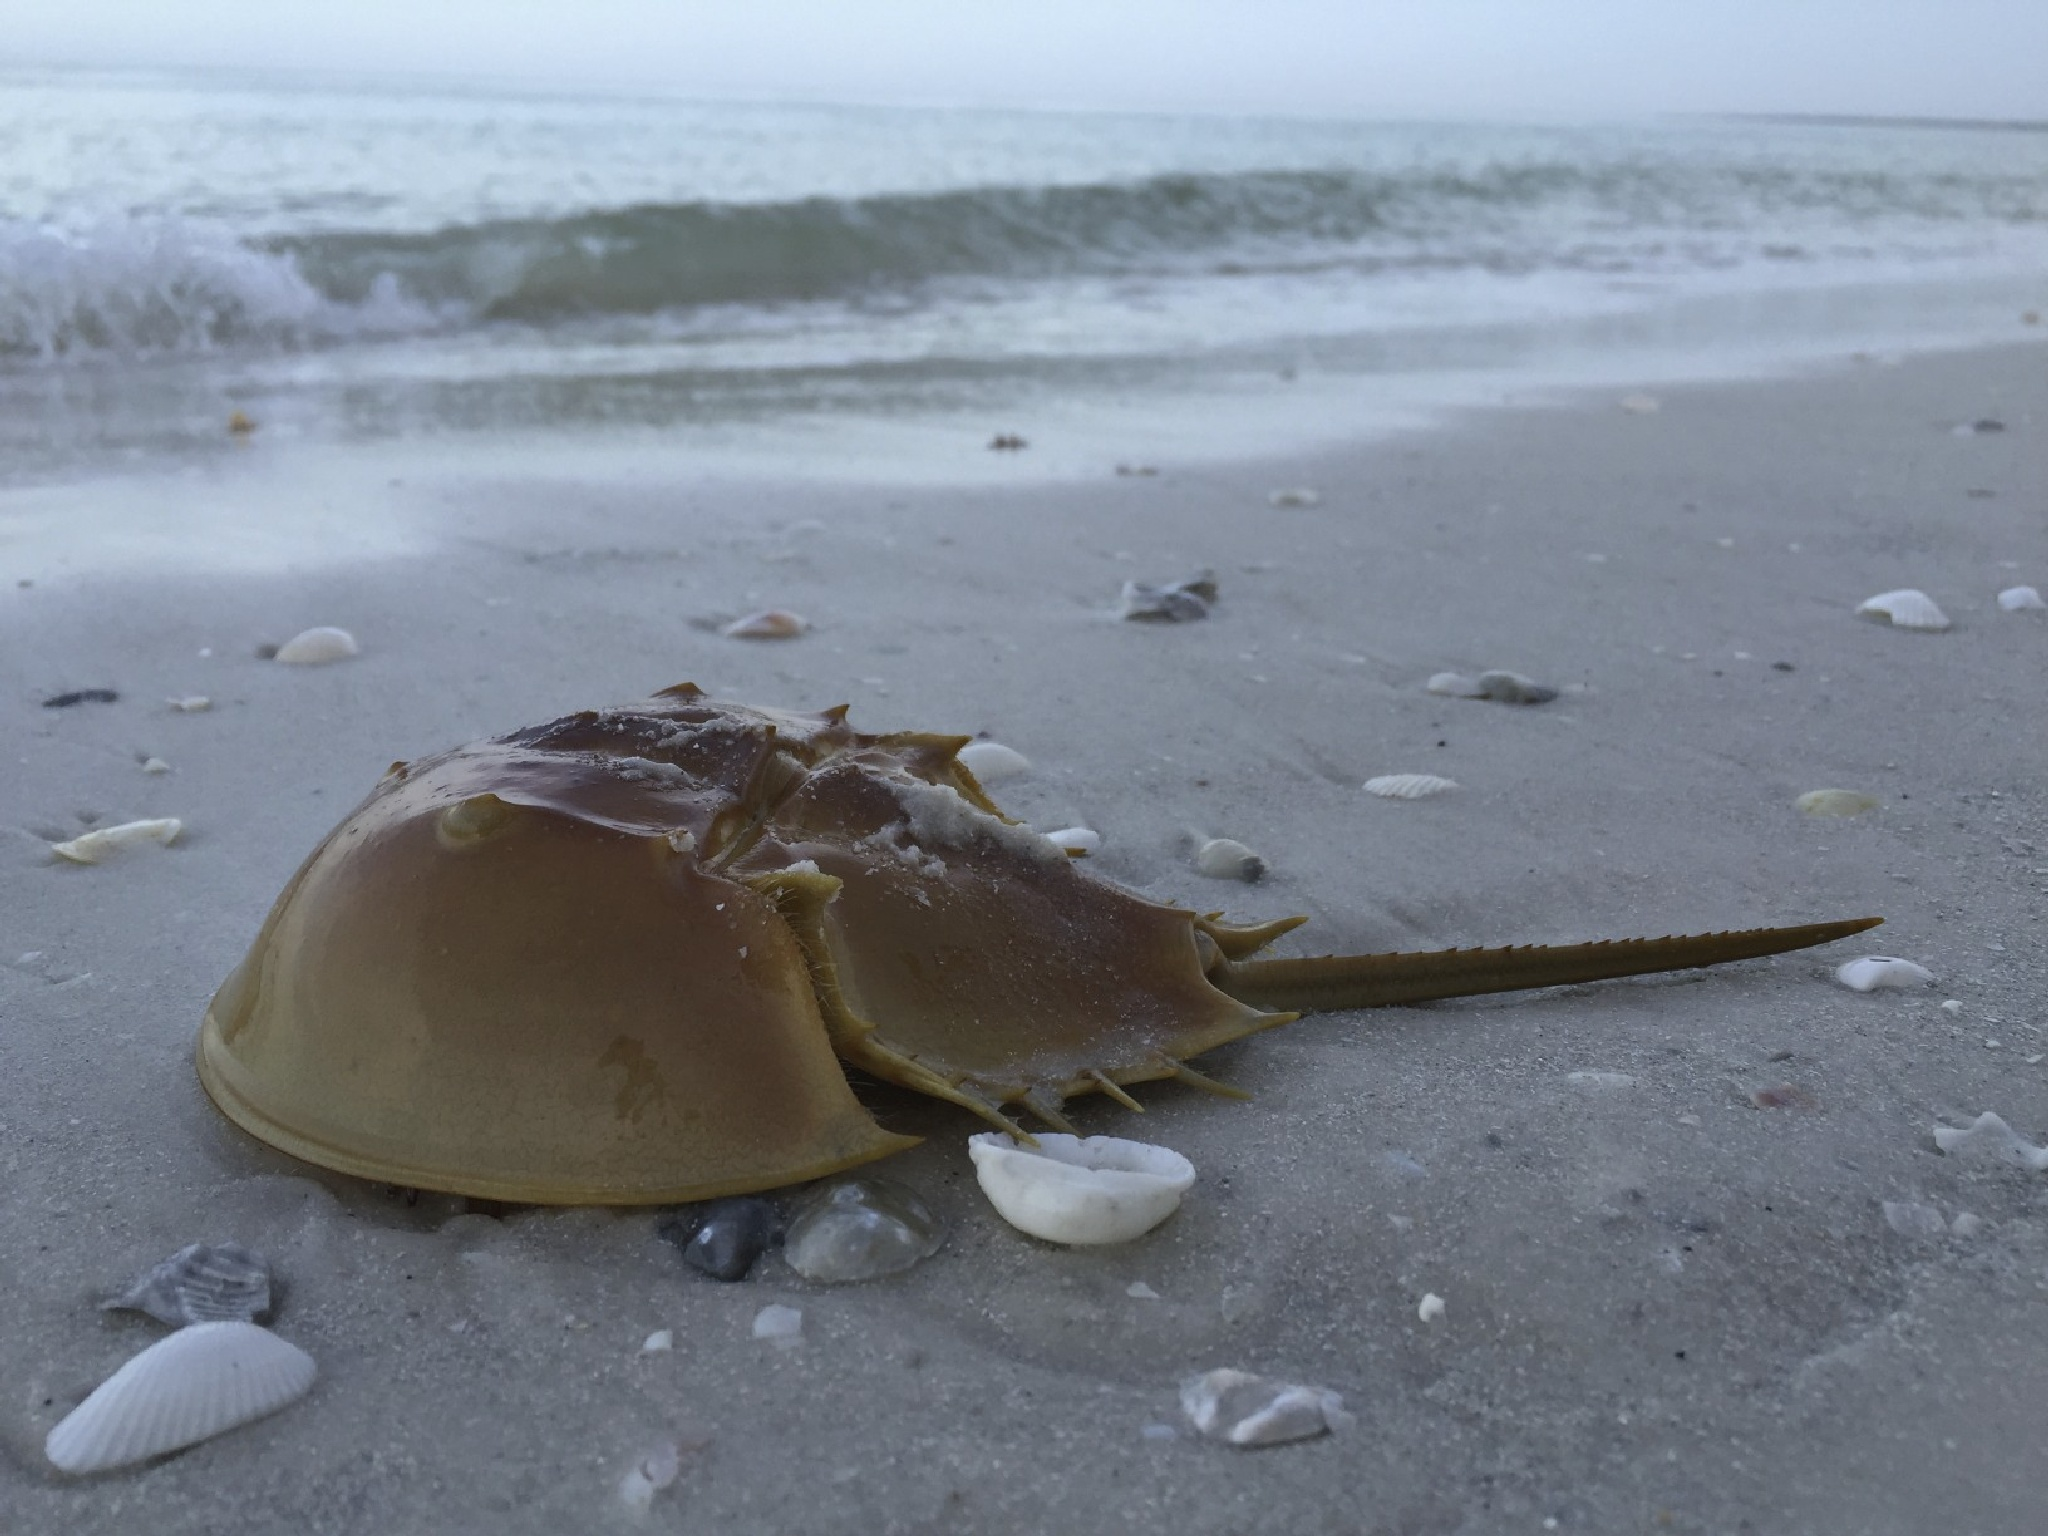 Horseshoe Crab by S. Asif Shah photography